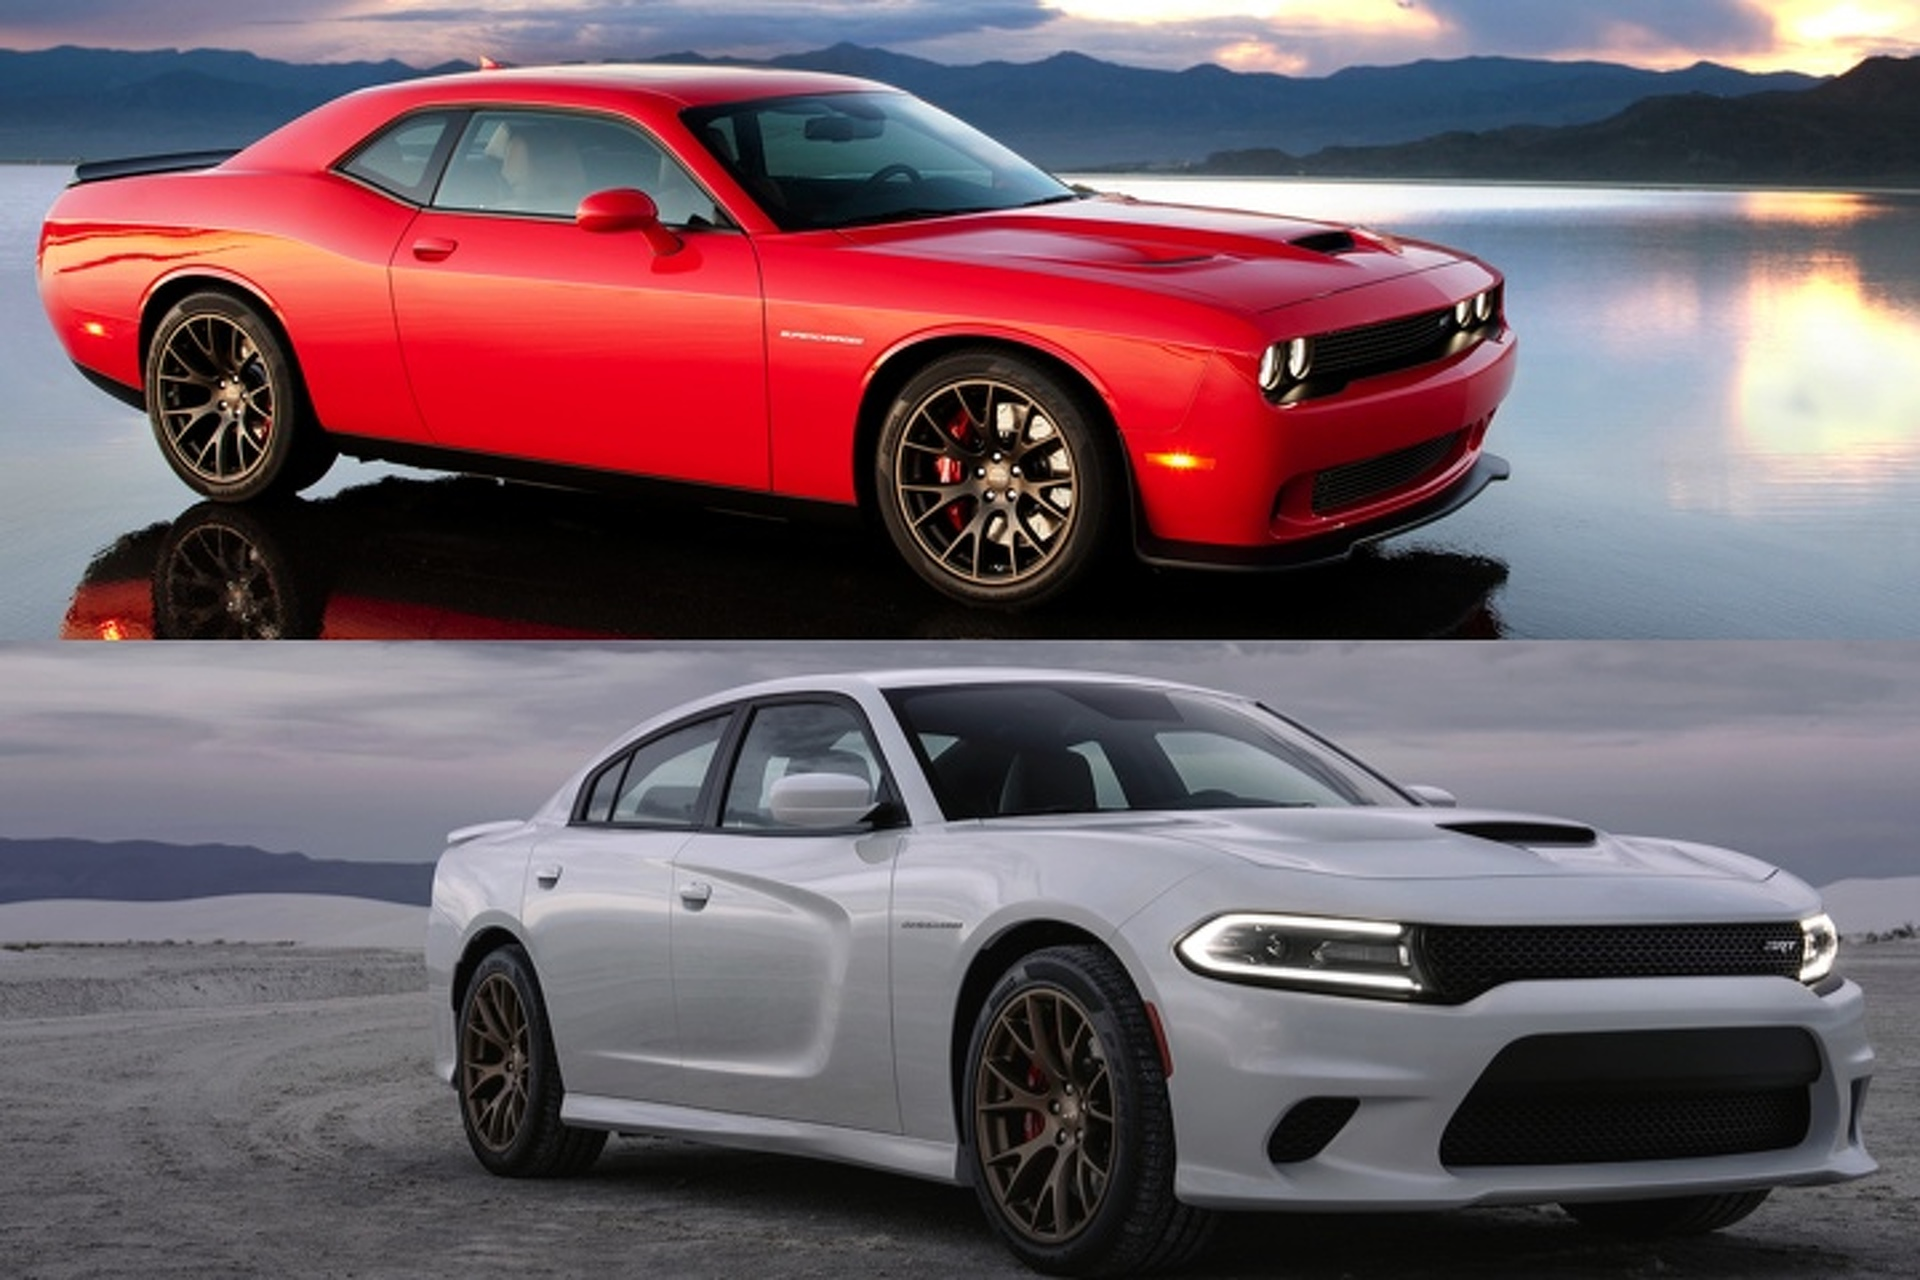 Challenger Vs Charger >> Dodge Charger Hellcat Vs Challenger Hellcat Which Would You Rather